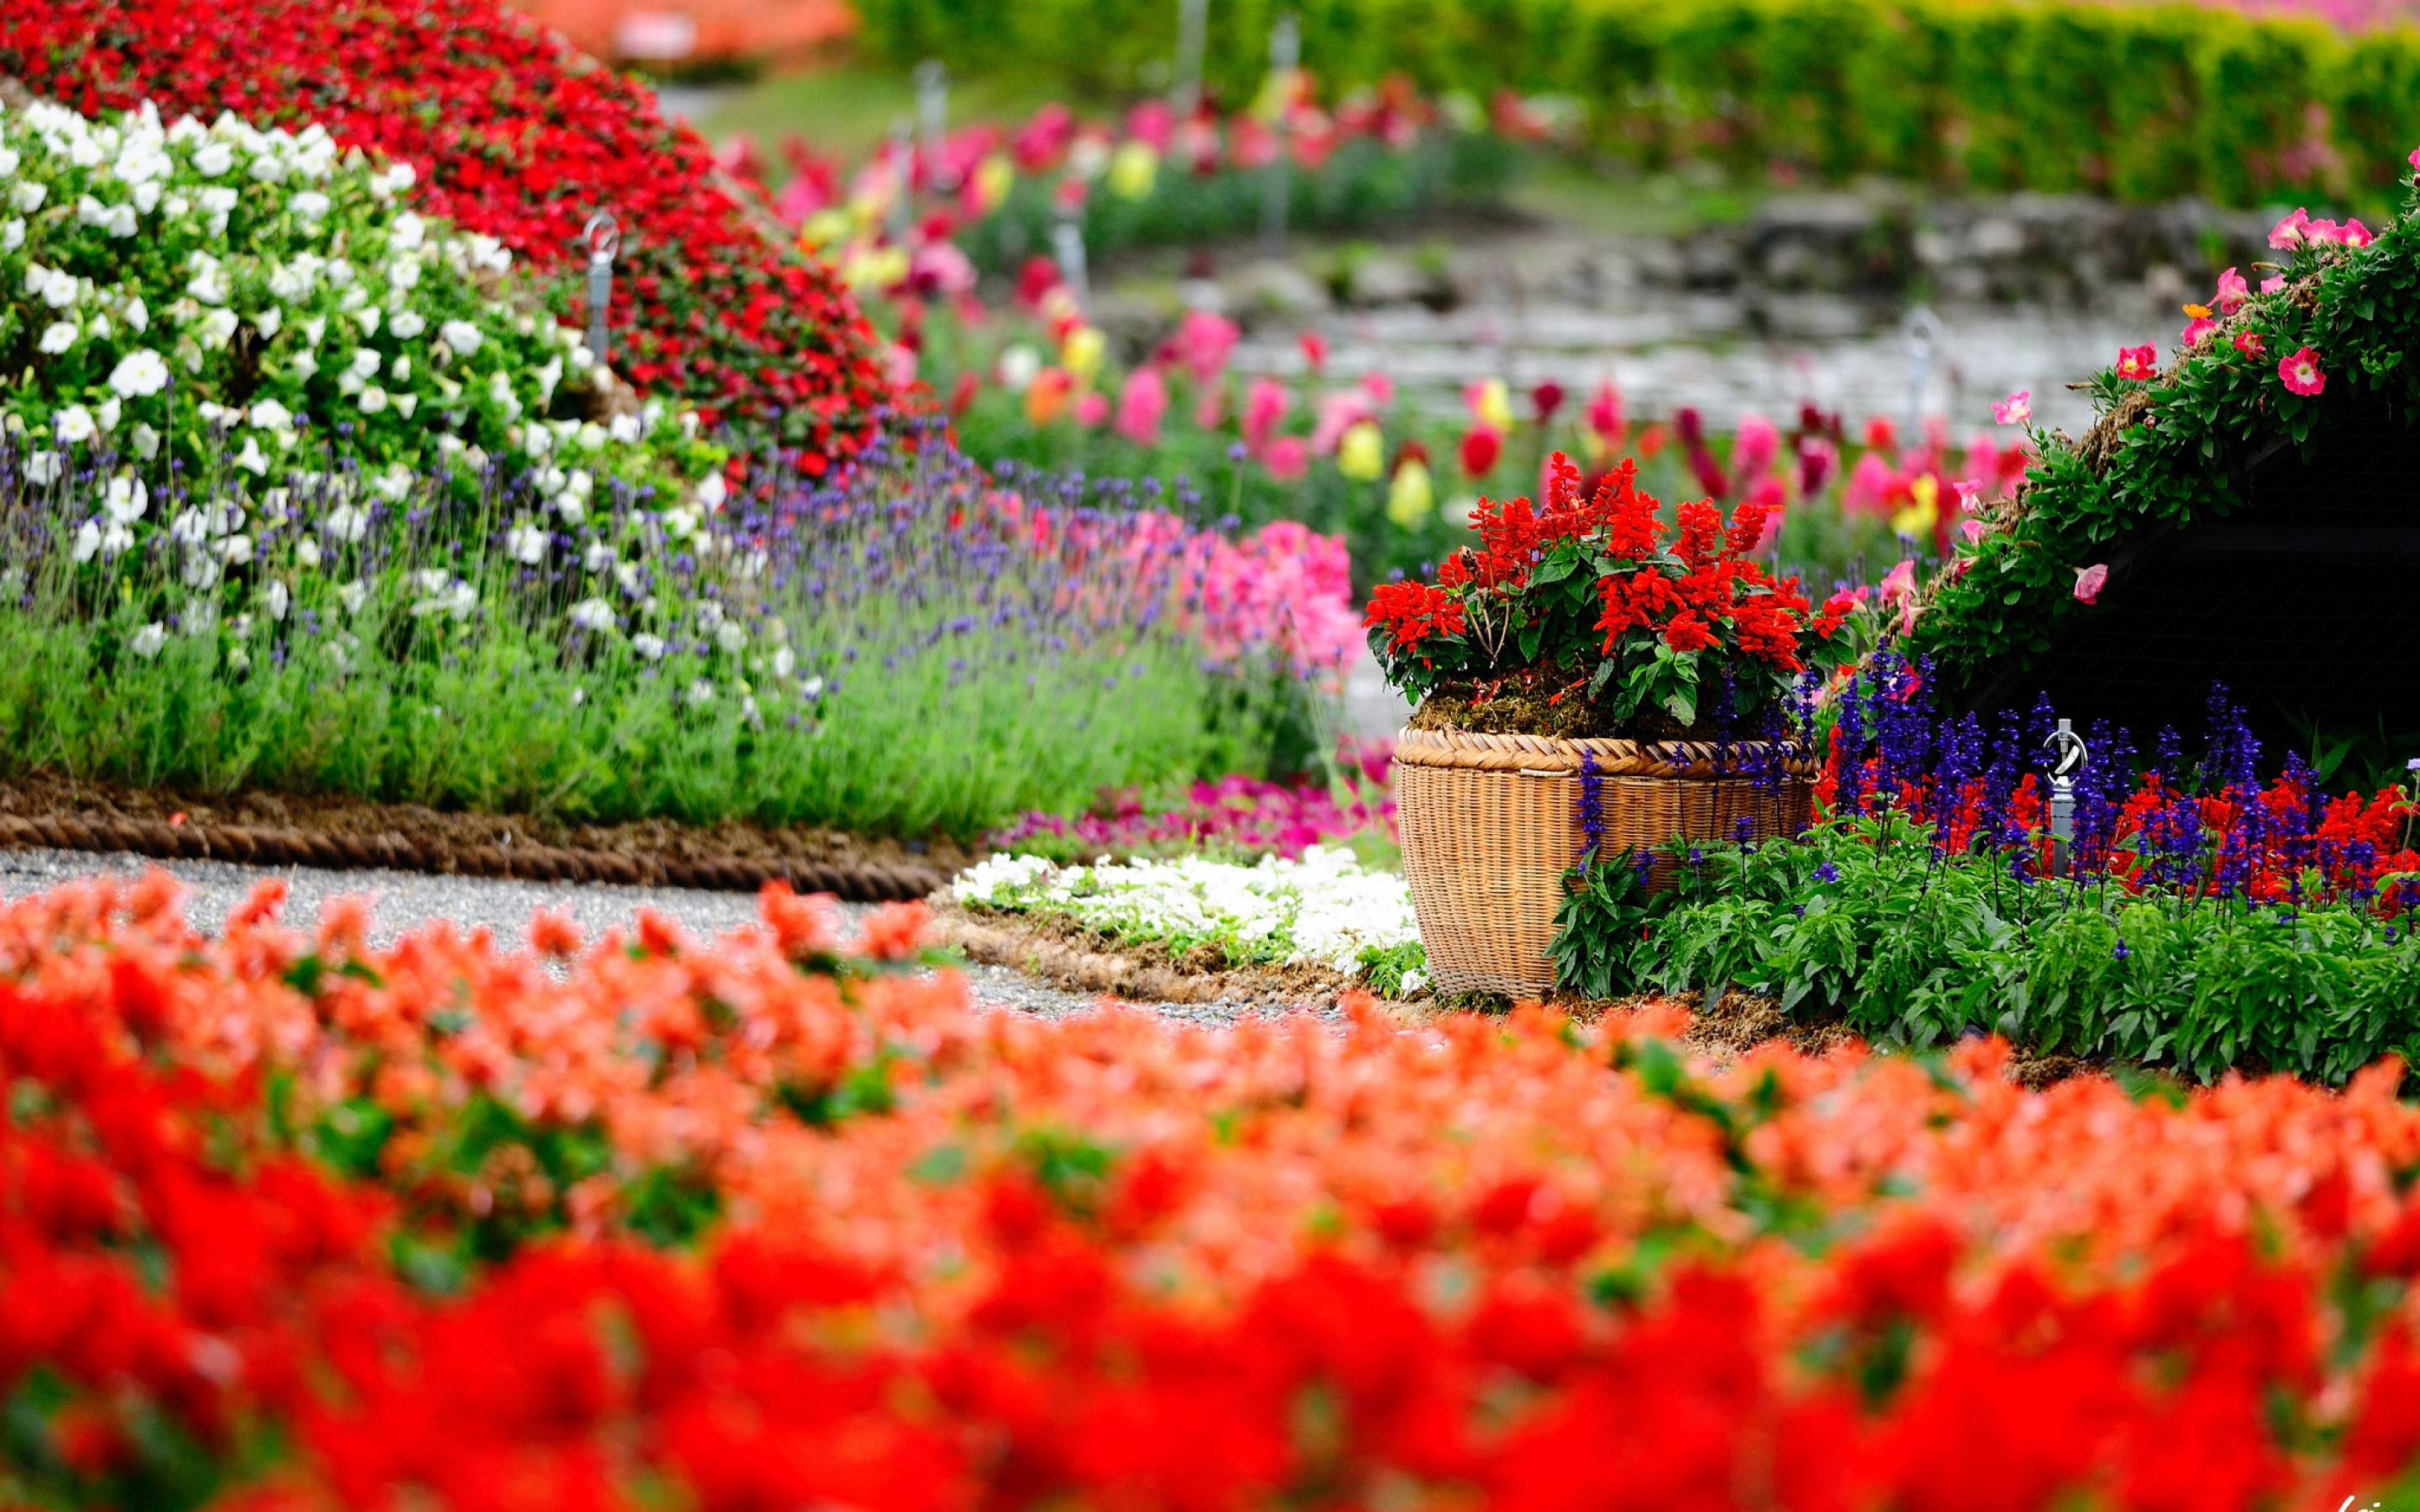 Hd wallpaper garden - Garden Wallpapers Full Hd Wallpaper Search